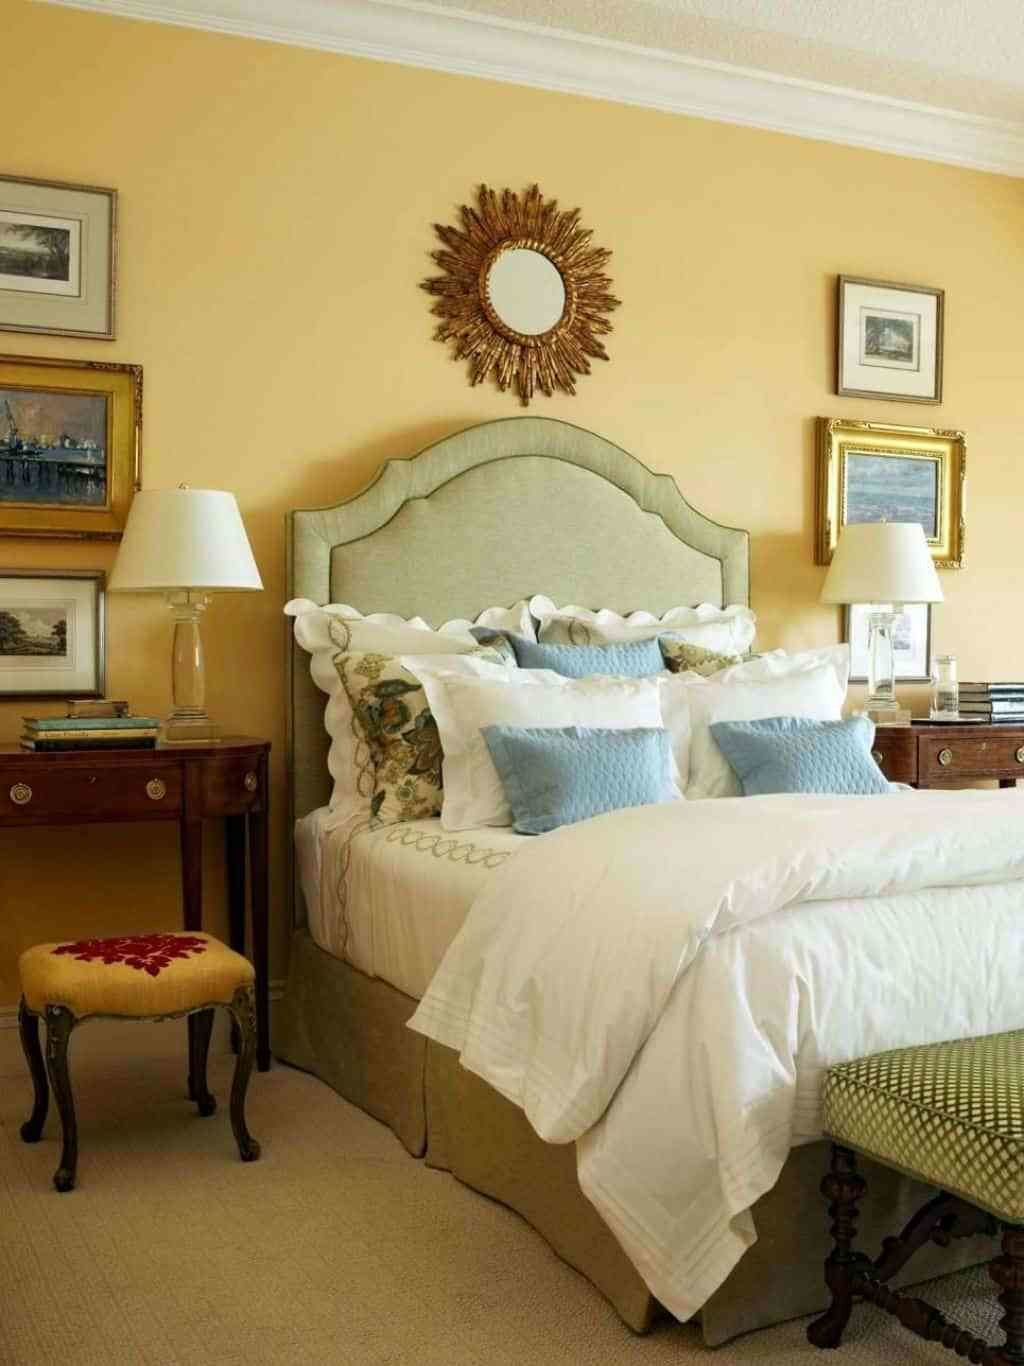 Best Bedroom With Sunburst Mirror And Yellow Walls Decorating With Pictures